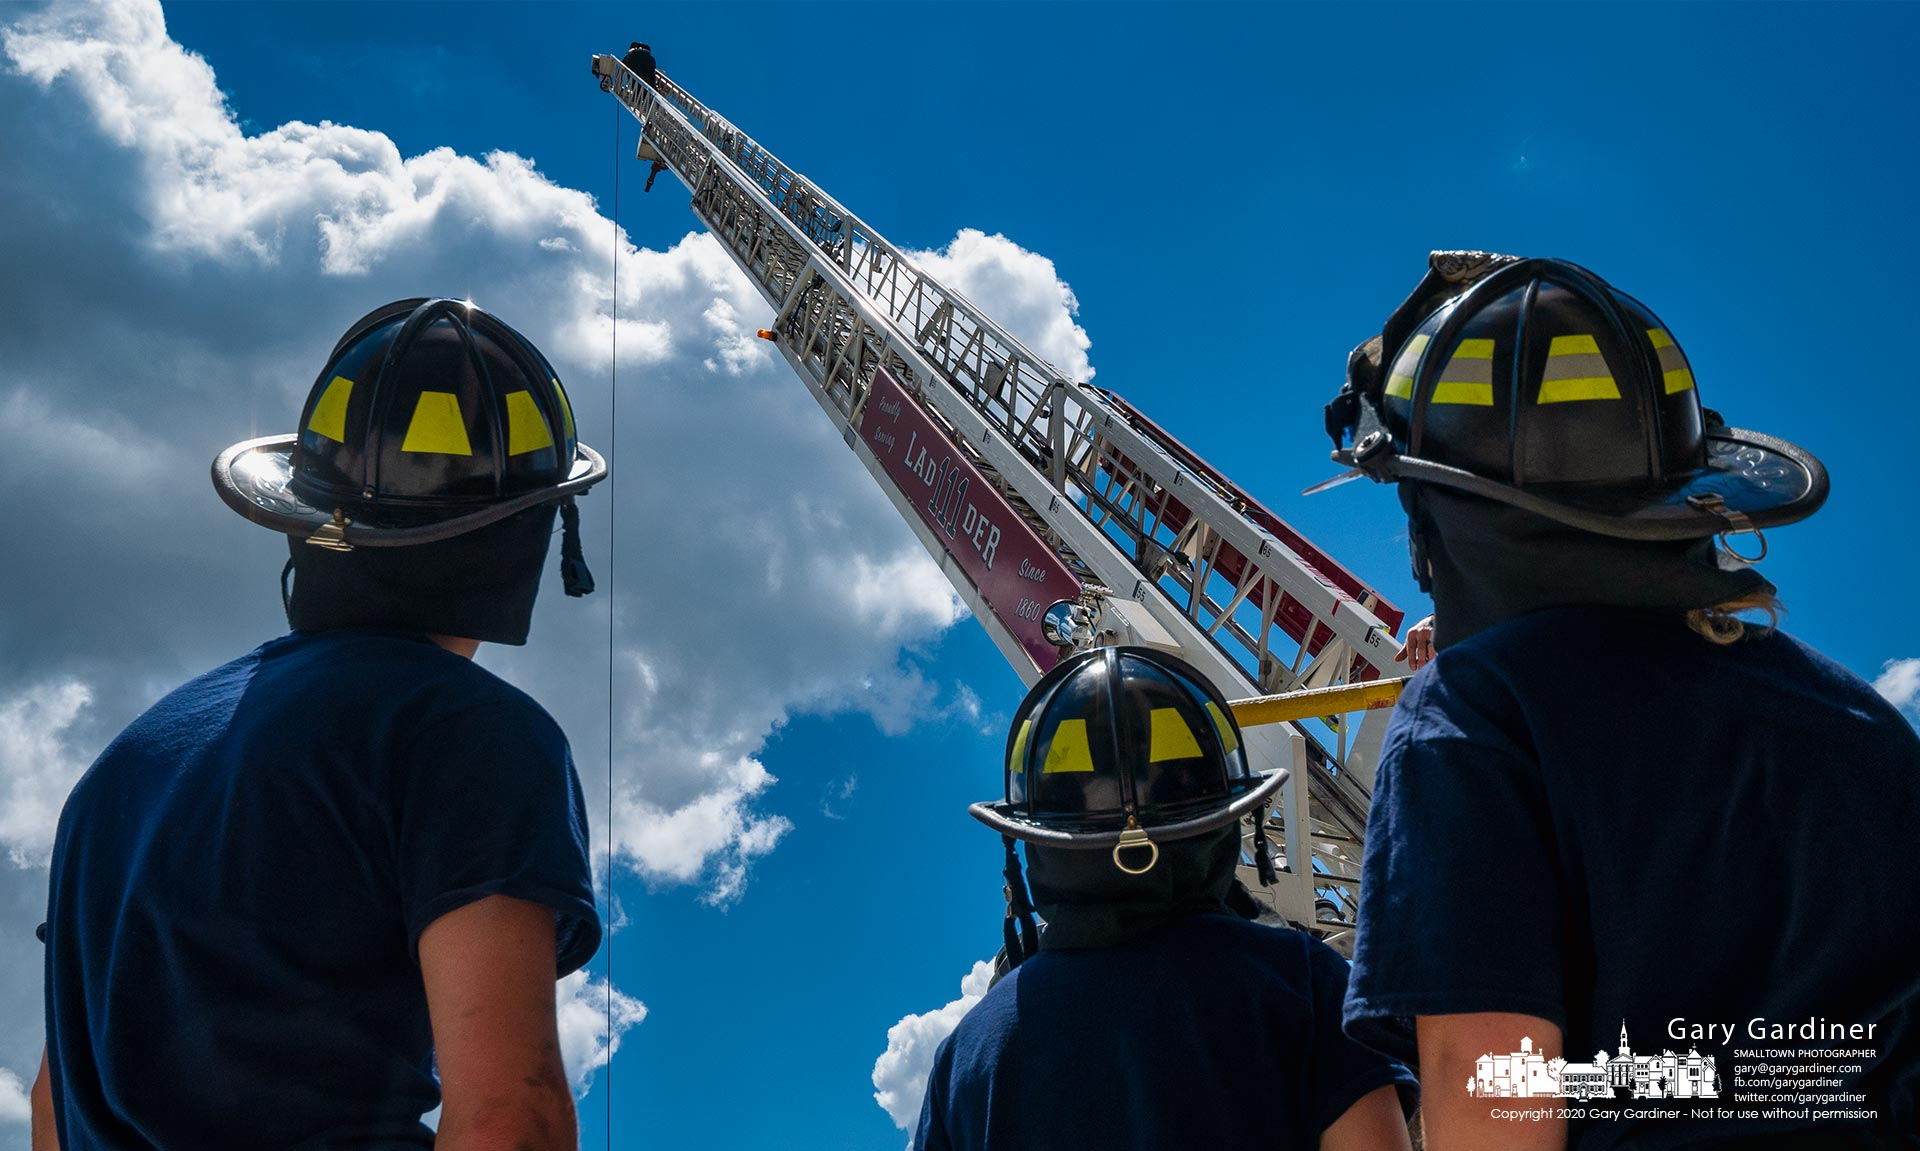 Firefighter trainees watch as another student reaches the top of a 105-foot aerial ladder during training with the climb being the final stage on their exam when training is completed. My Final Photo for june 15, 2021.